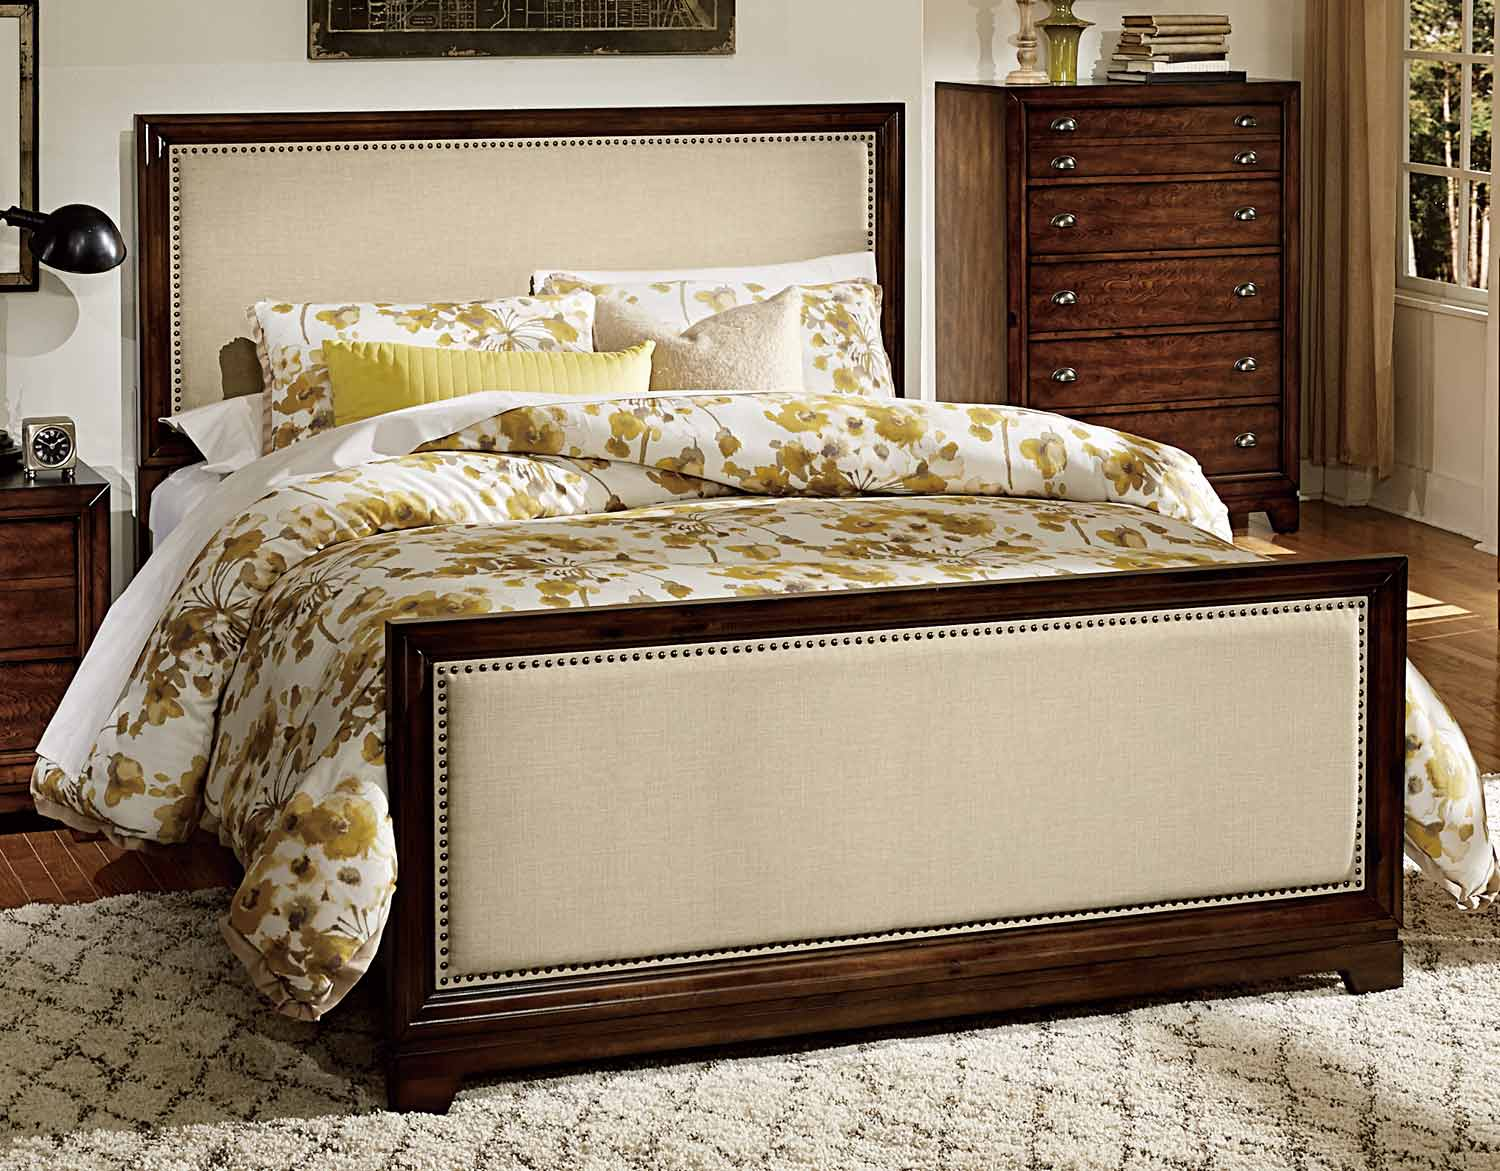 Homelegance Bernal Heights Upholstered Bed - Dark Walnut